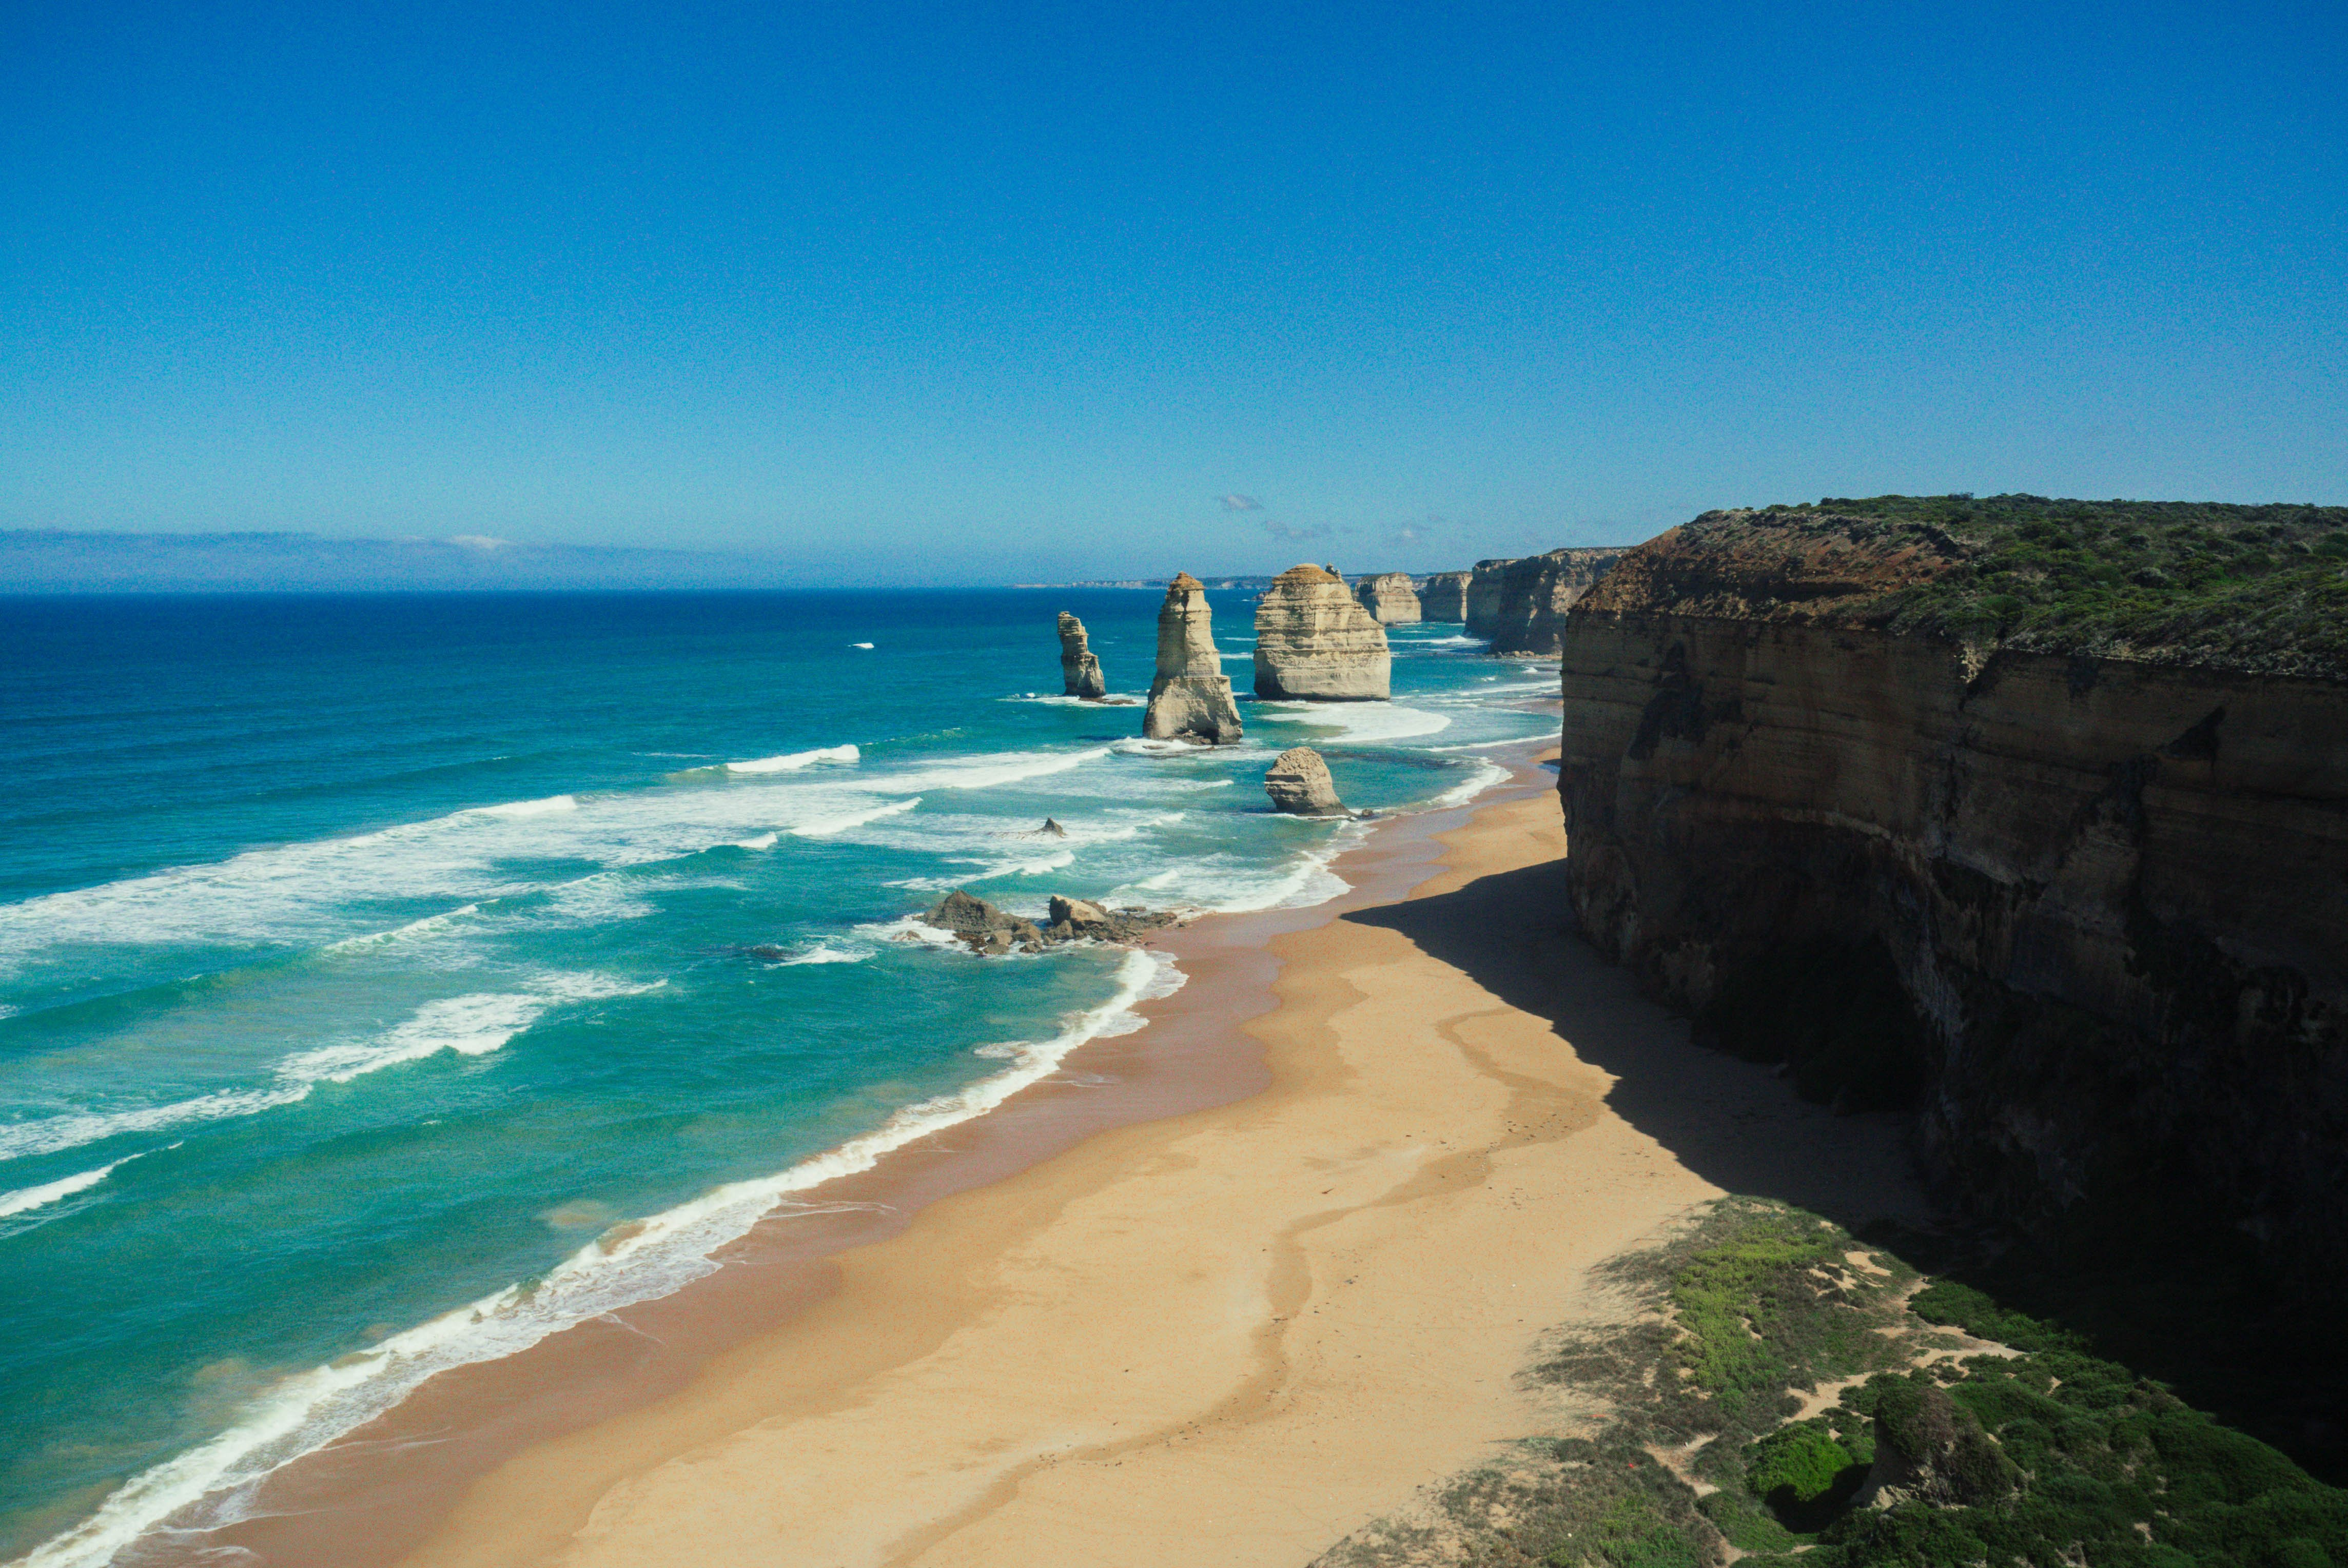 Image of twelve apostles rock formations in sea along great ocean road in australia